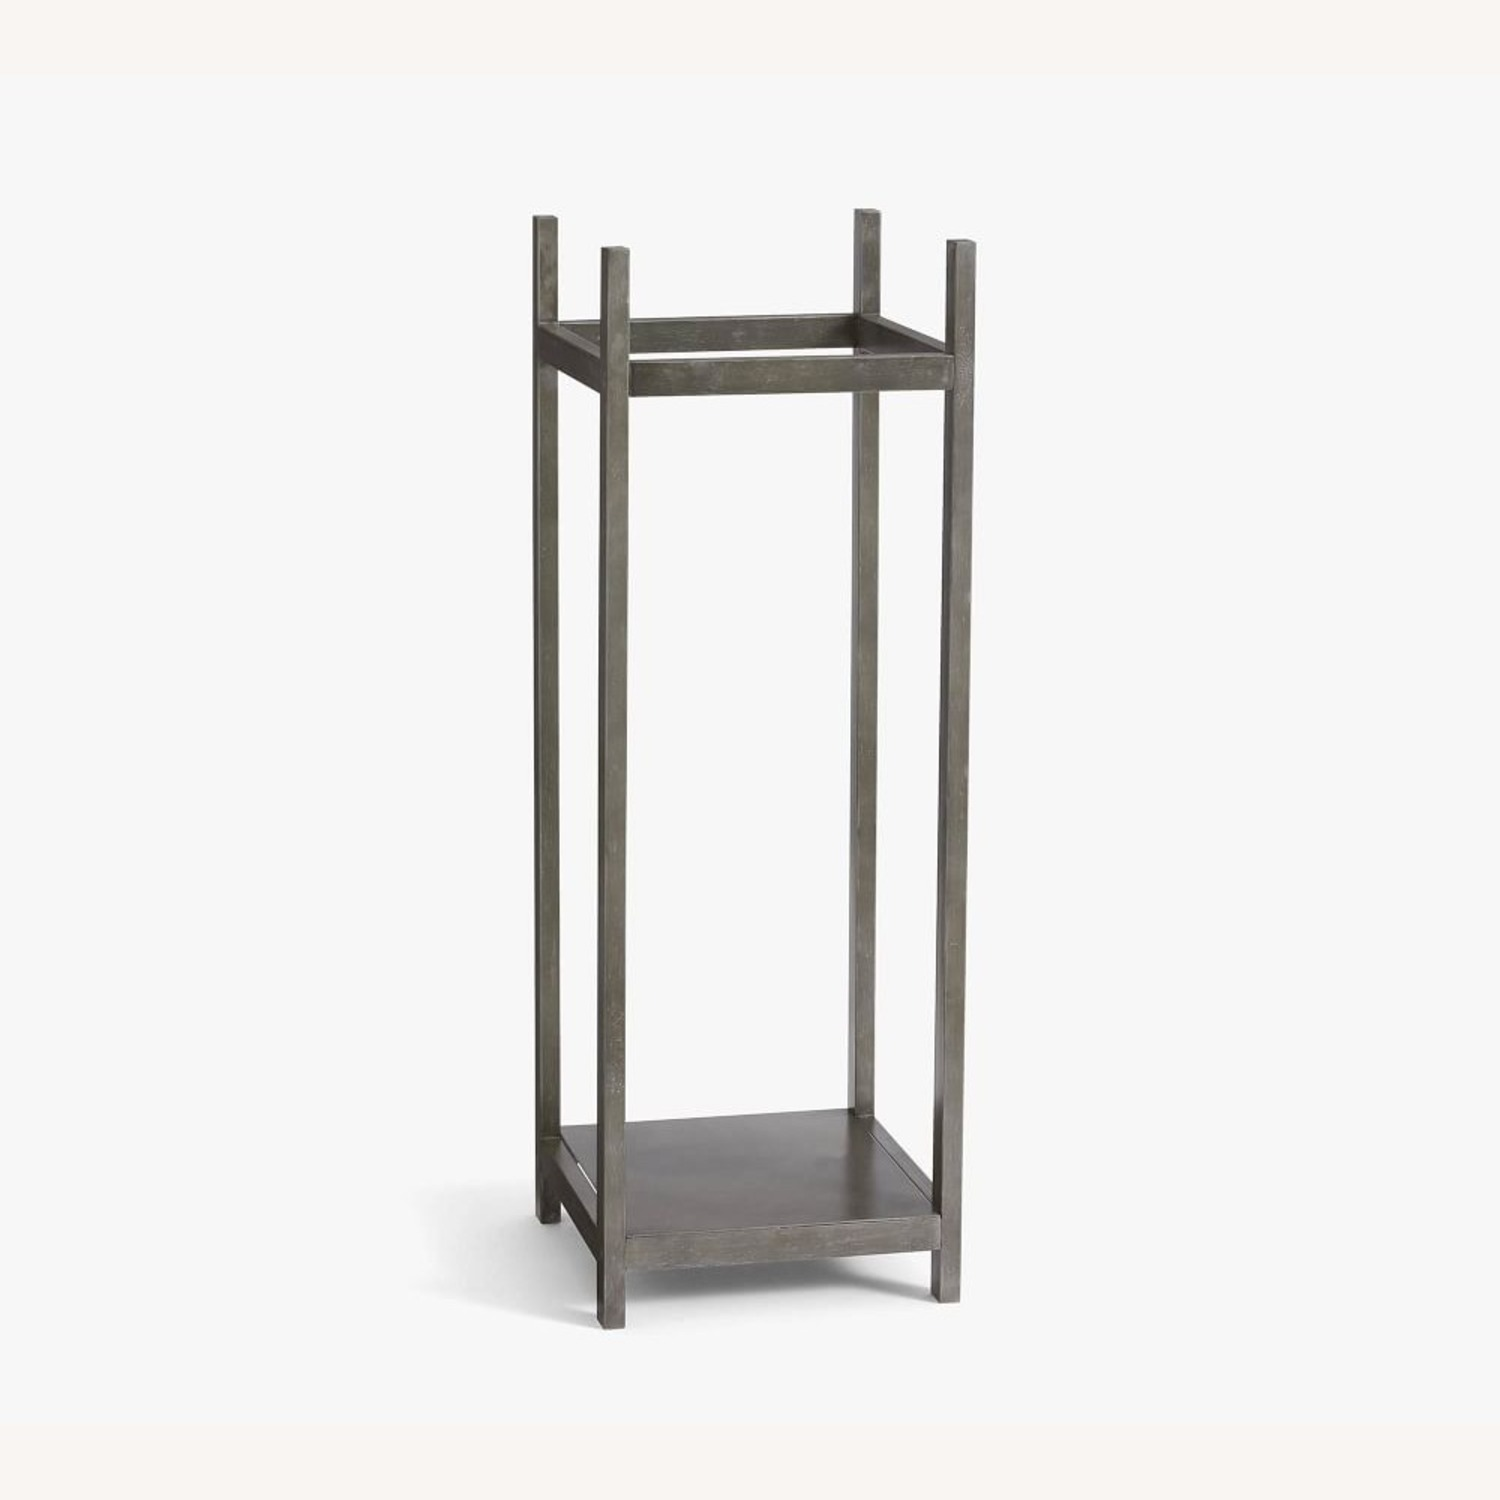 Pottery Barn Industrial Fireplace Log Holder Tower - image-2